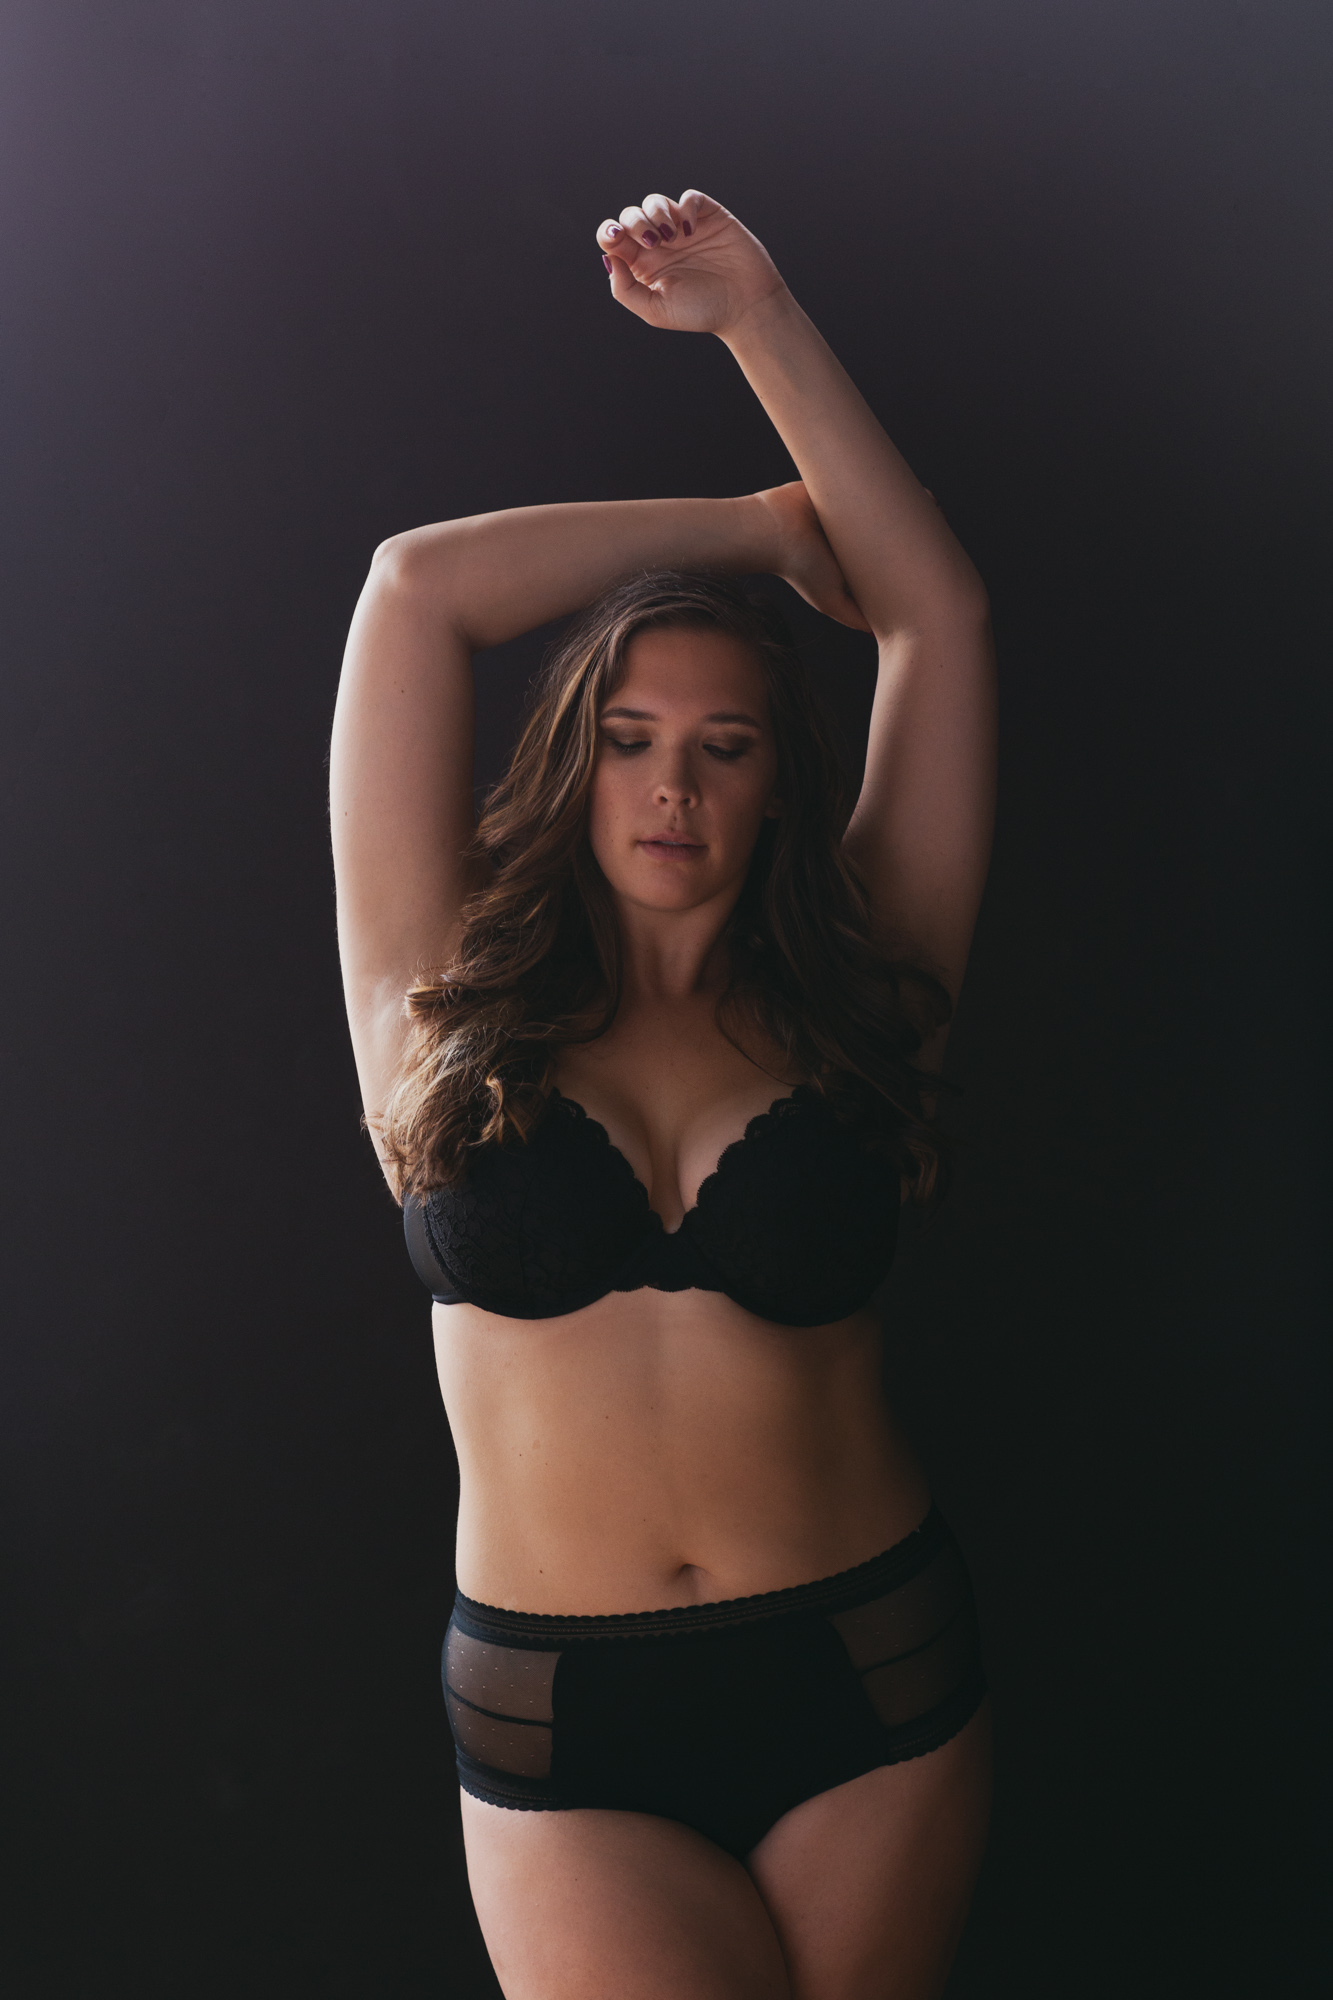 Brunette in black bra and panty set with arms above head